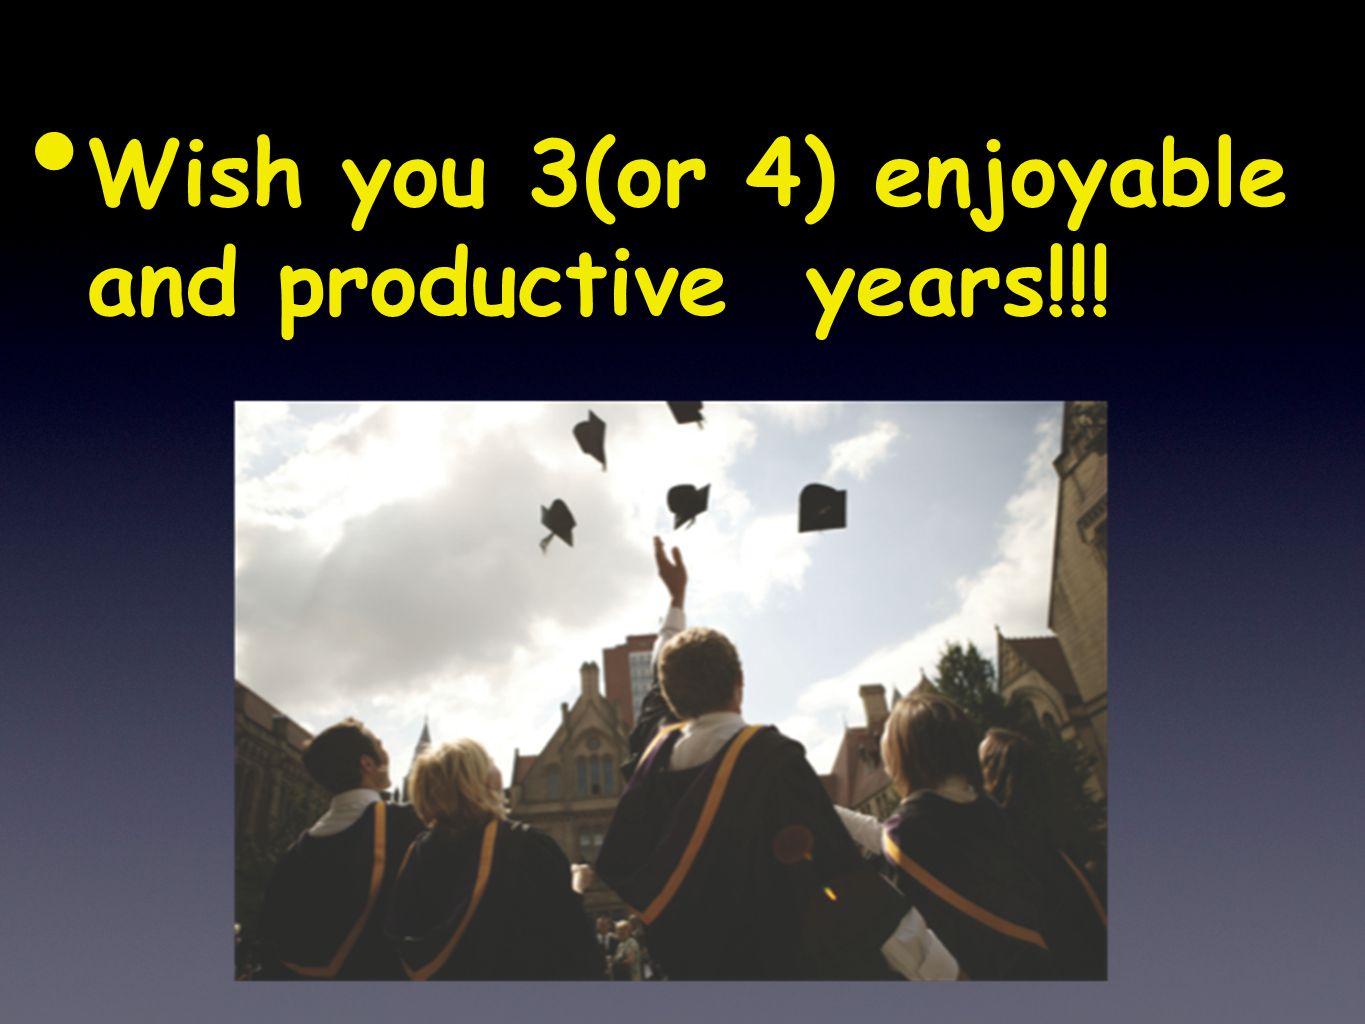 Wish you 3(or 4) enjoyable and productive years!!!